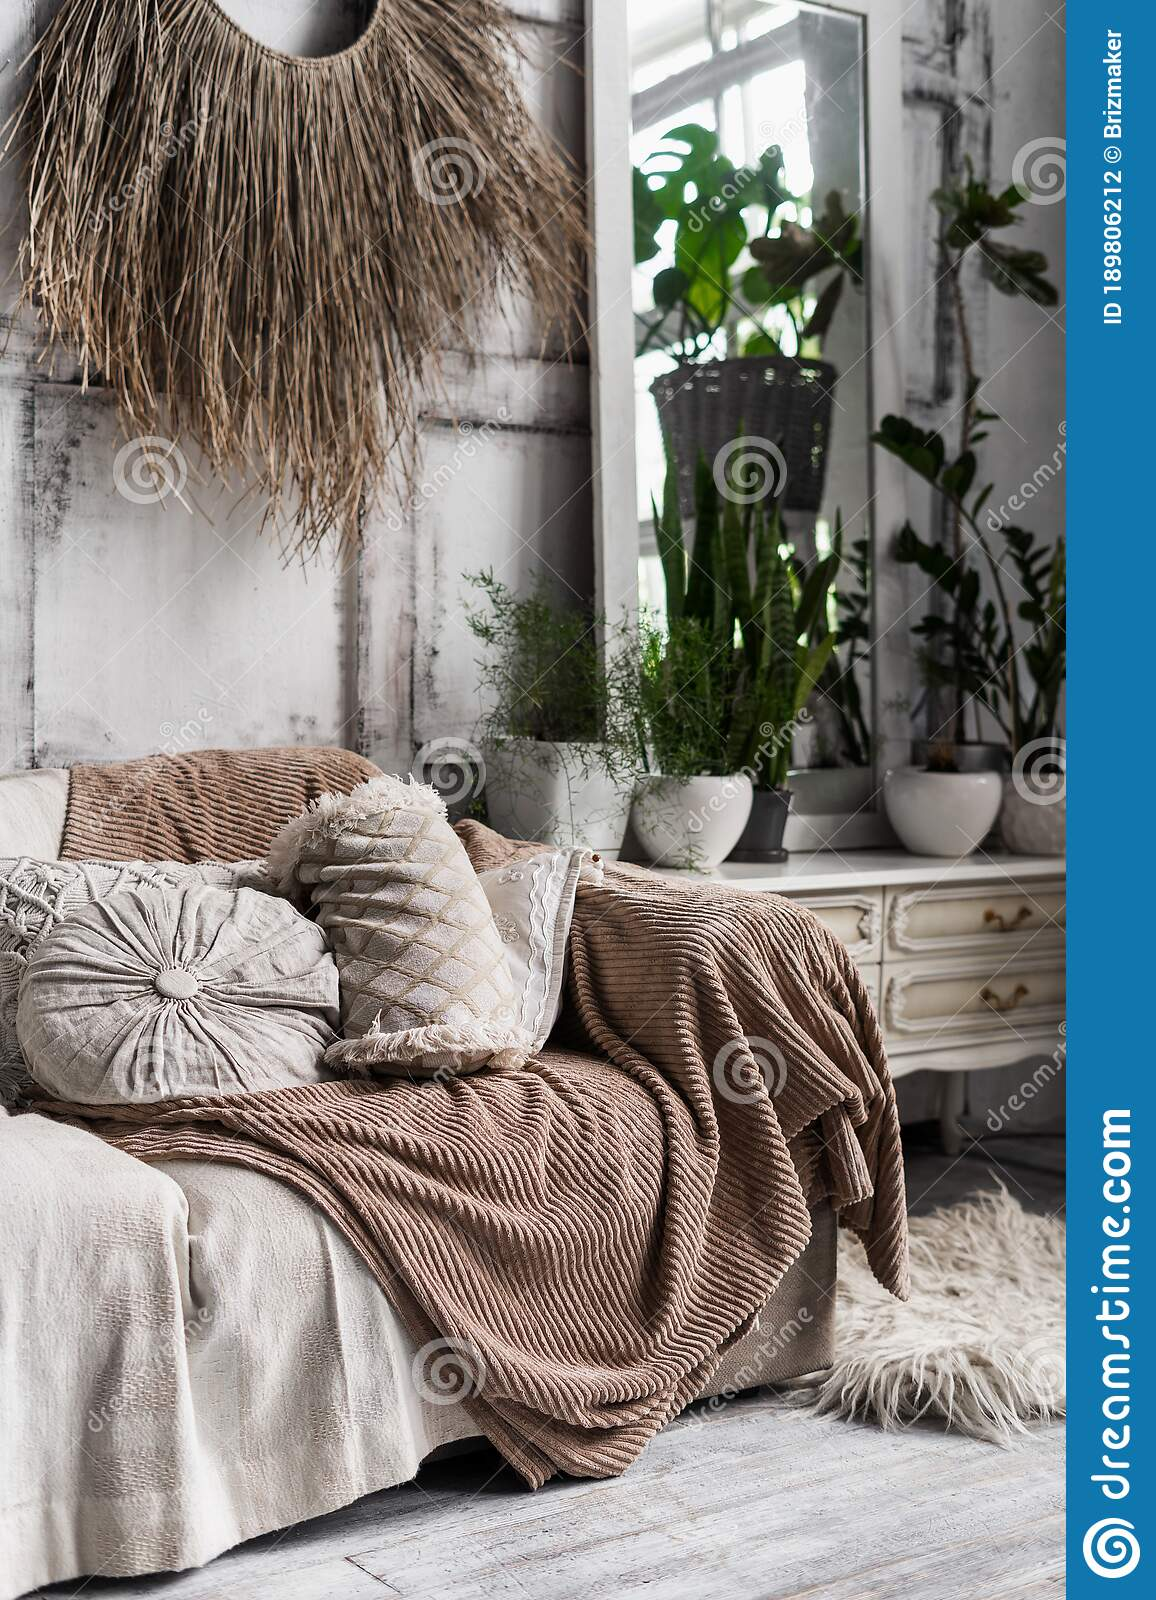 1 466 Boho Lounge Photos Free Royalty Free Stock Photos From Dreamstime